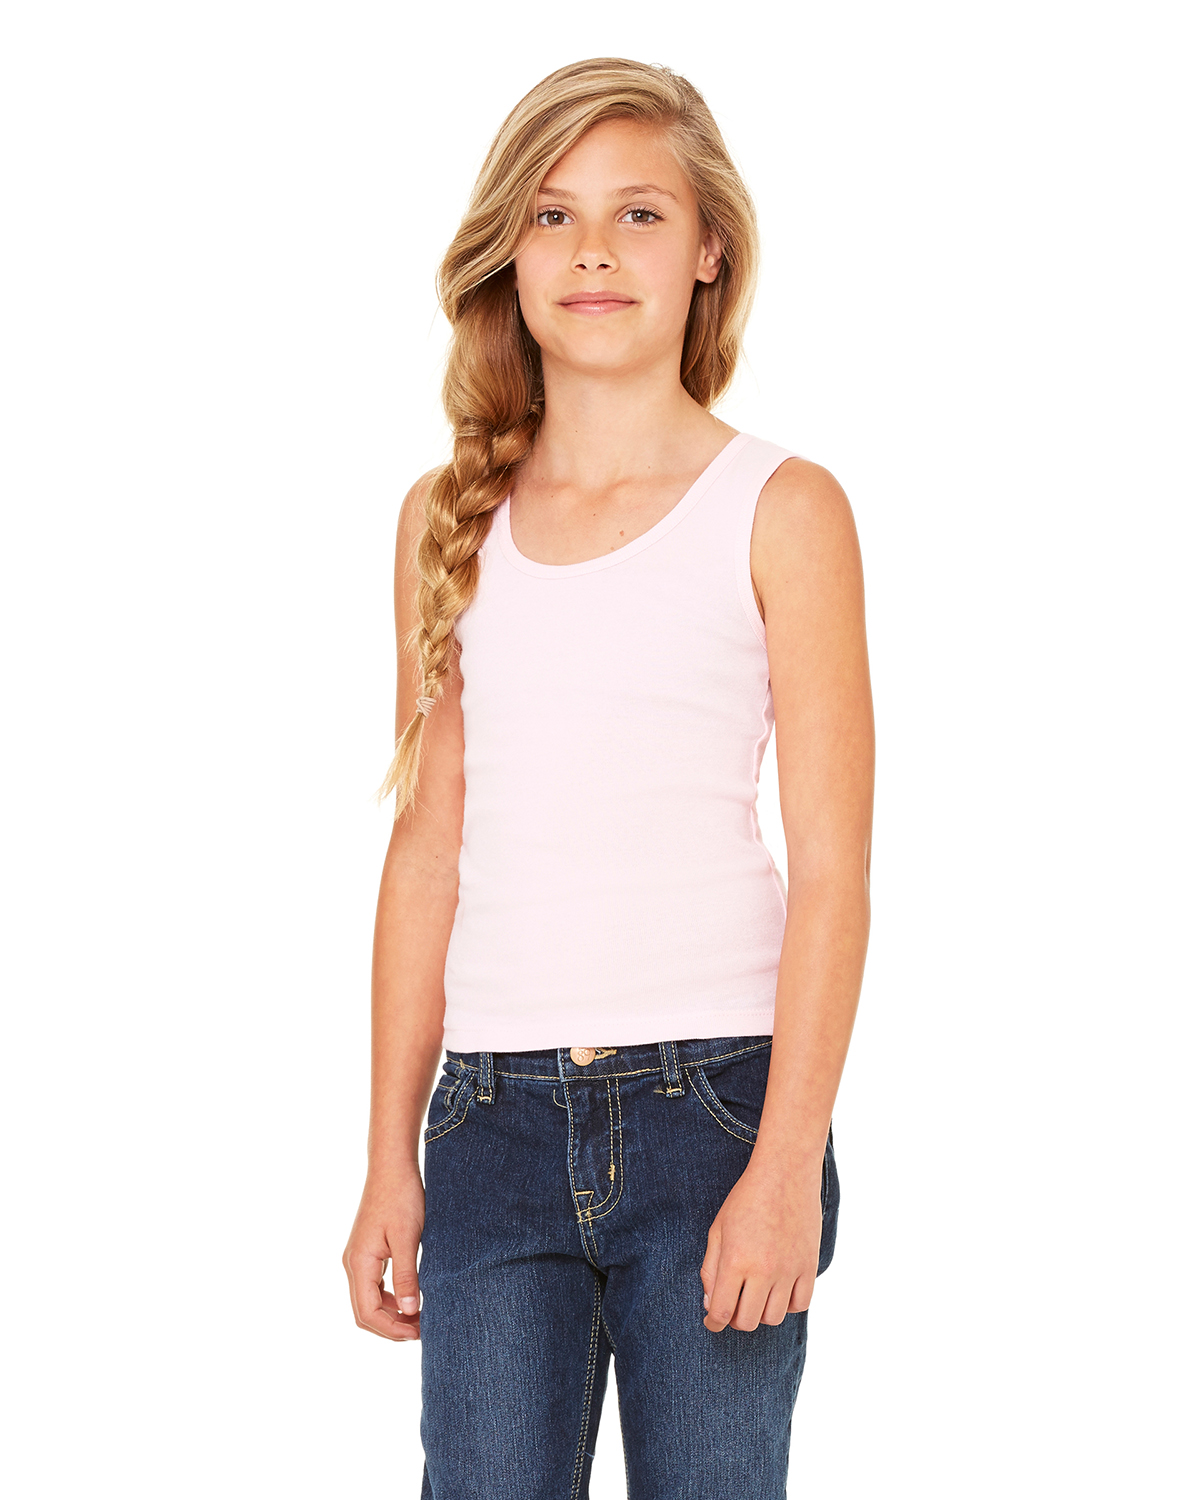 Bella girl 9080 1x1 Rib Tank Top